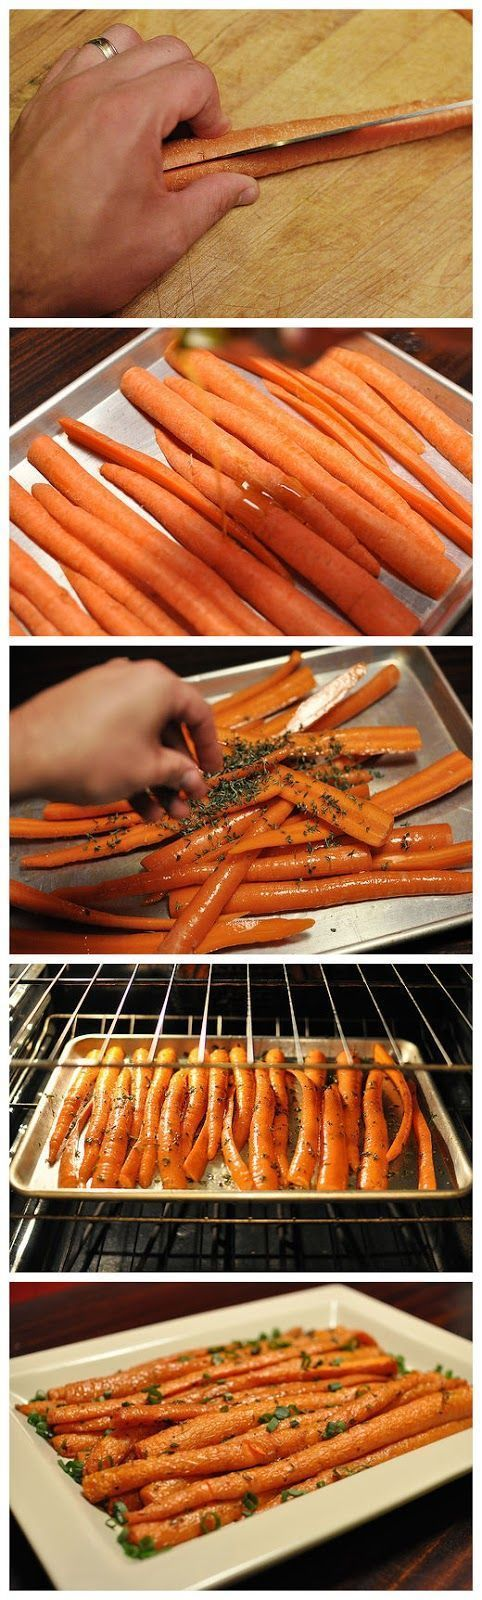 Garlic Roasted Carrots - This is really the best and easiest way to roast carrots. All you need is 5 min prep